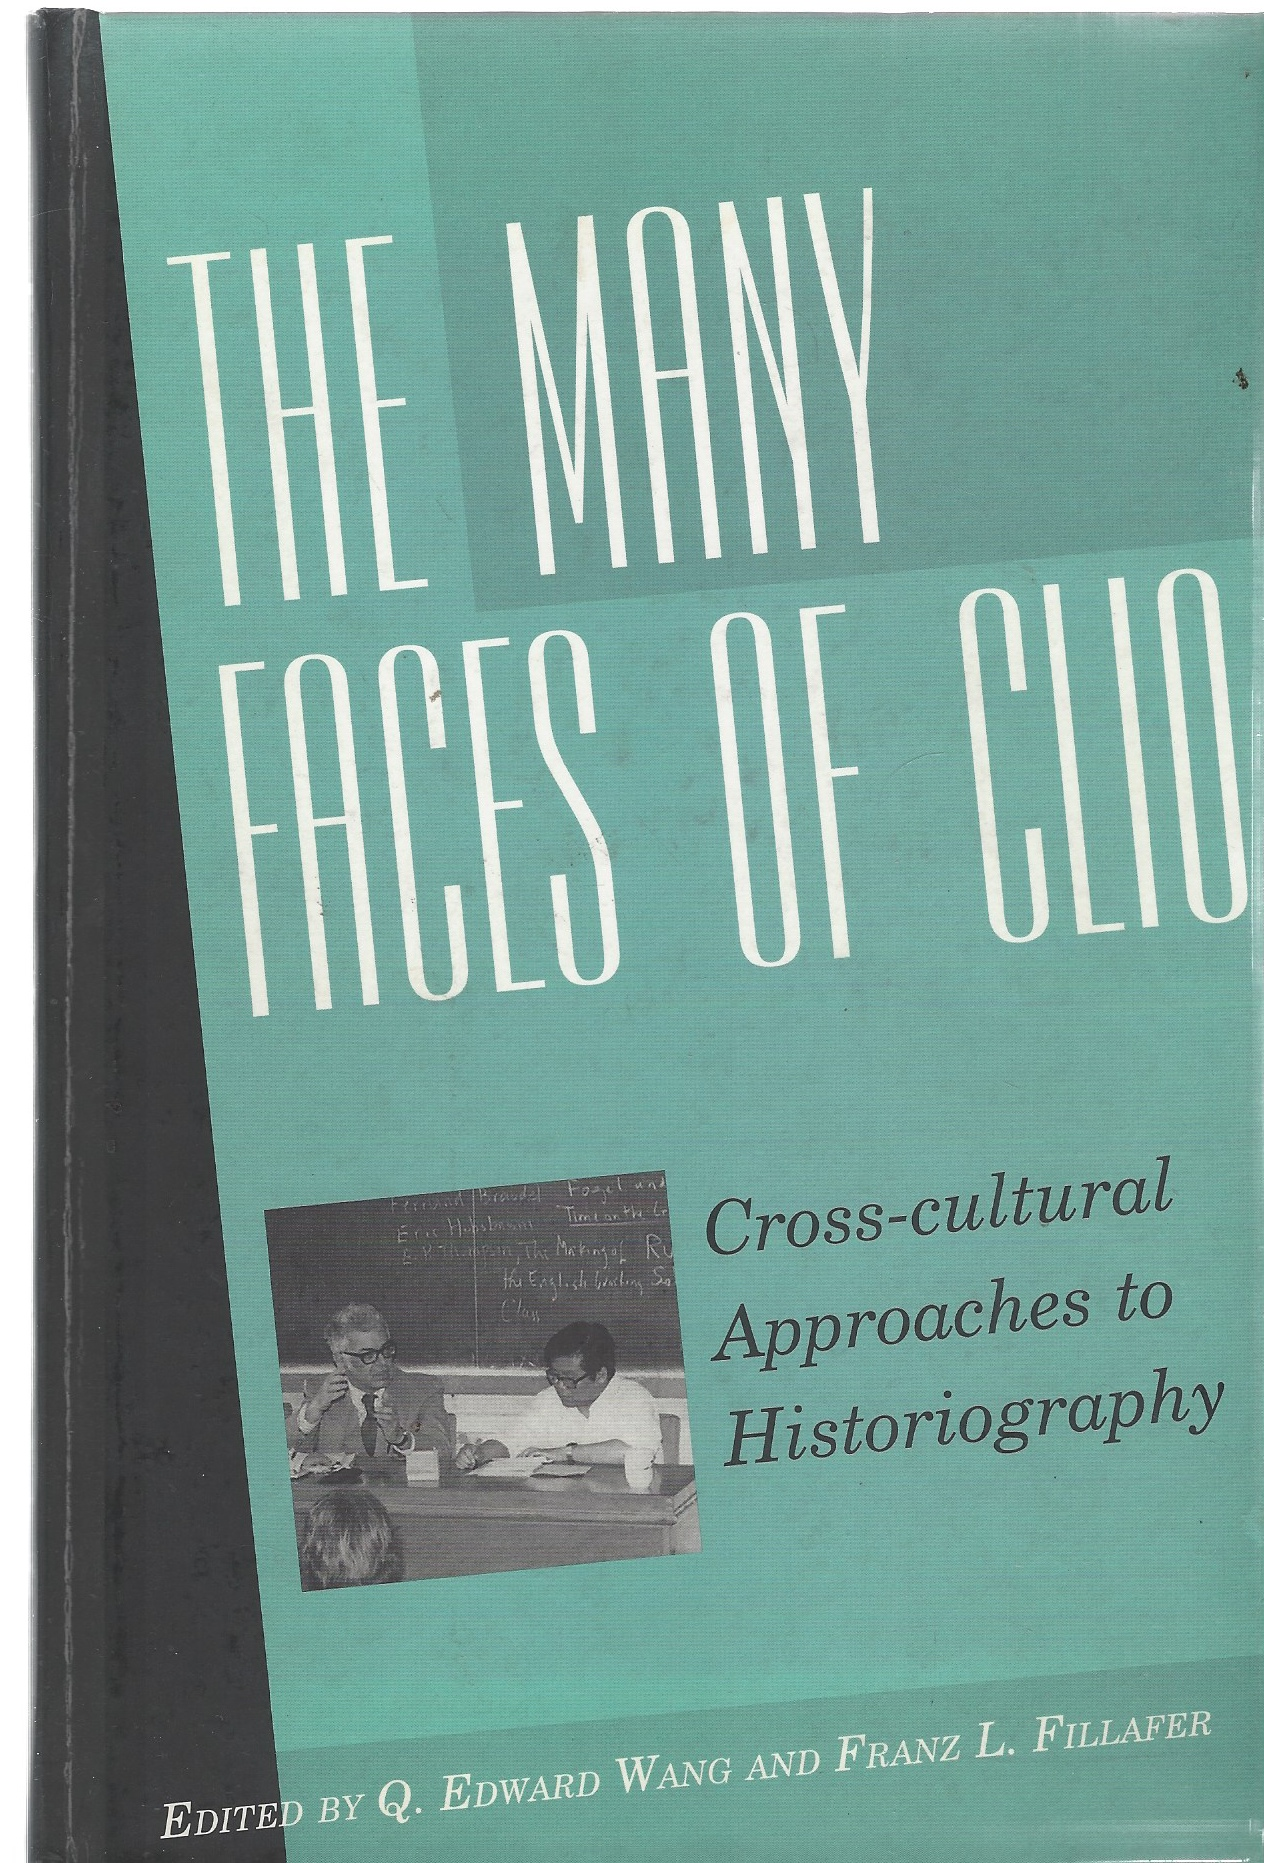 Image for The Many Faces of Clio  Cross-Cultural Approaches to Historiography: Essays in Honor of Gerog G. Iggers